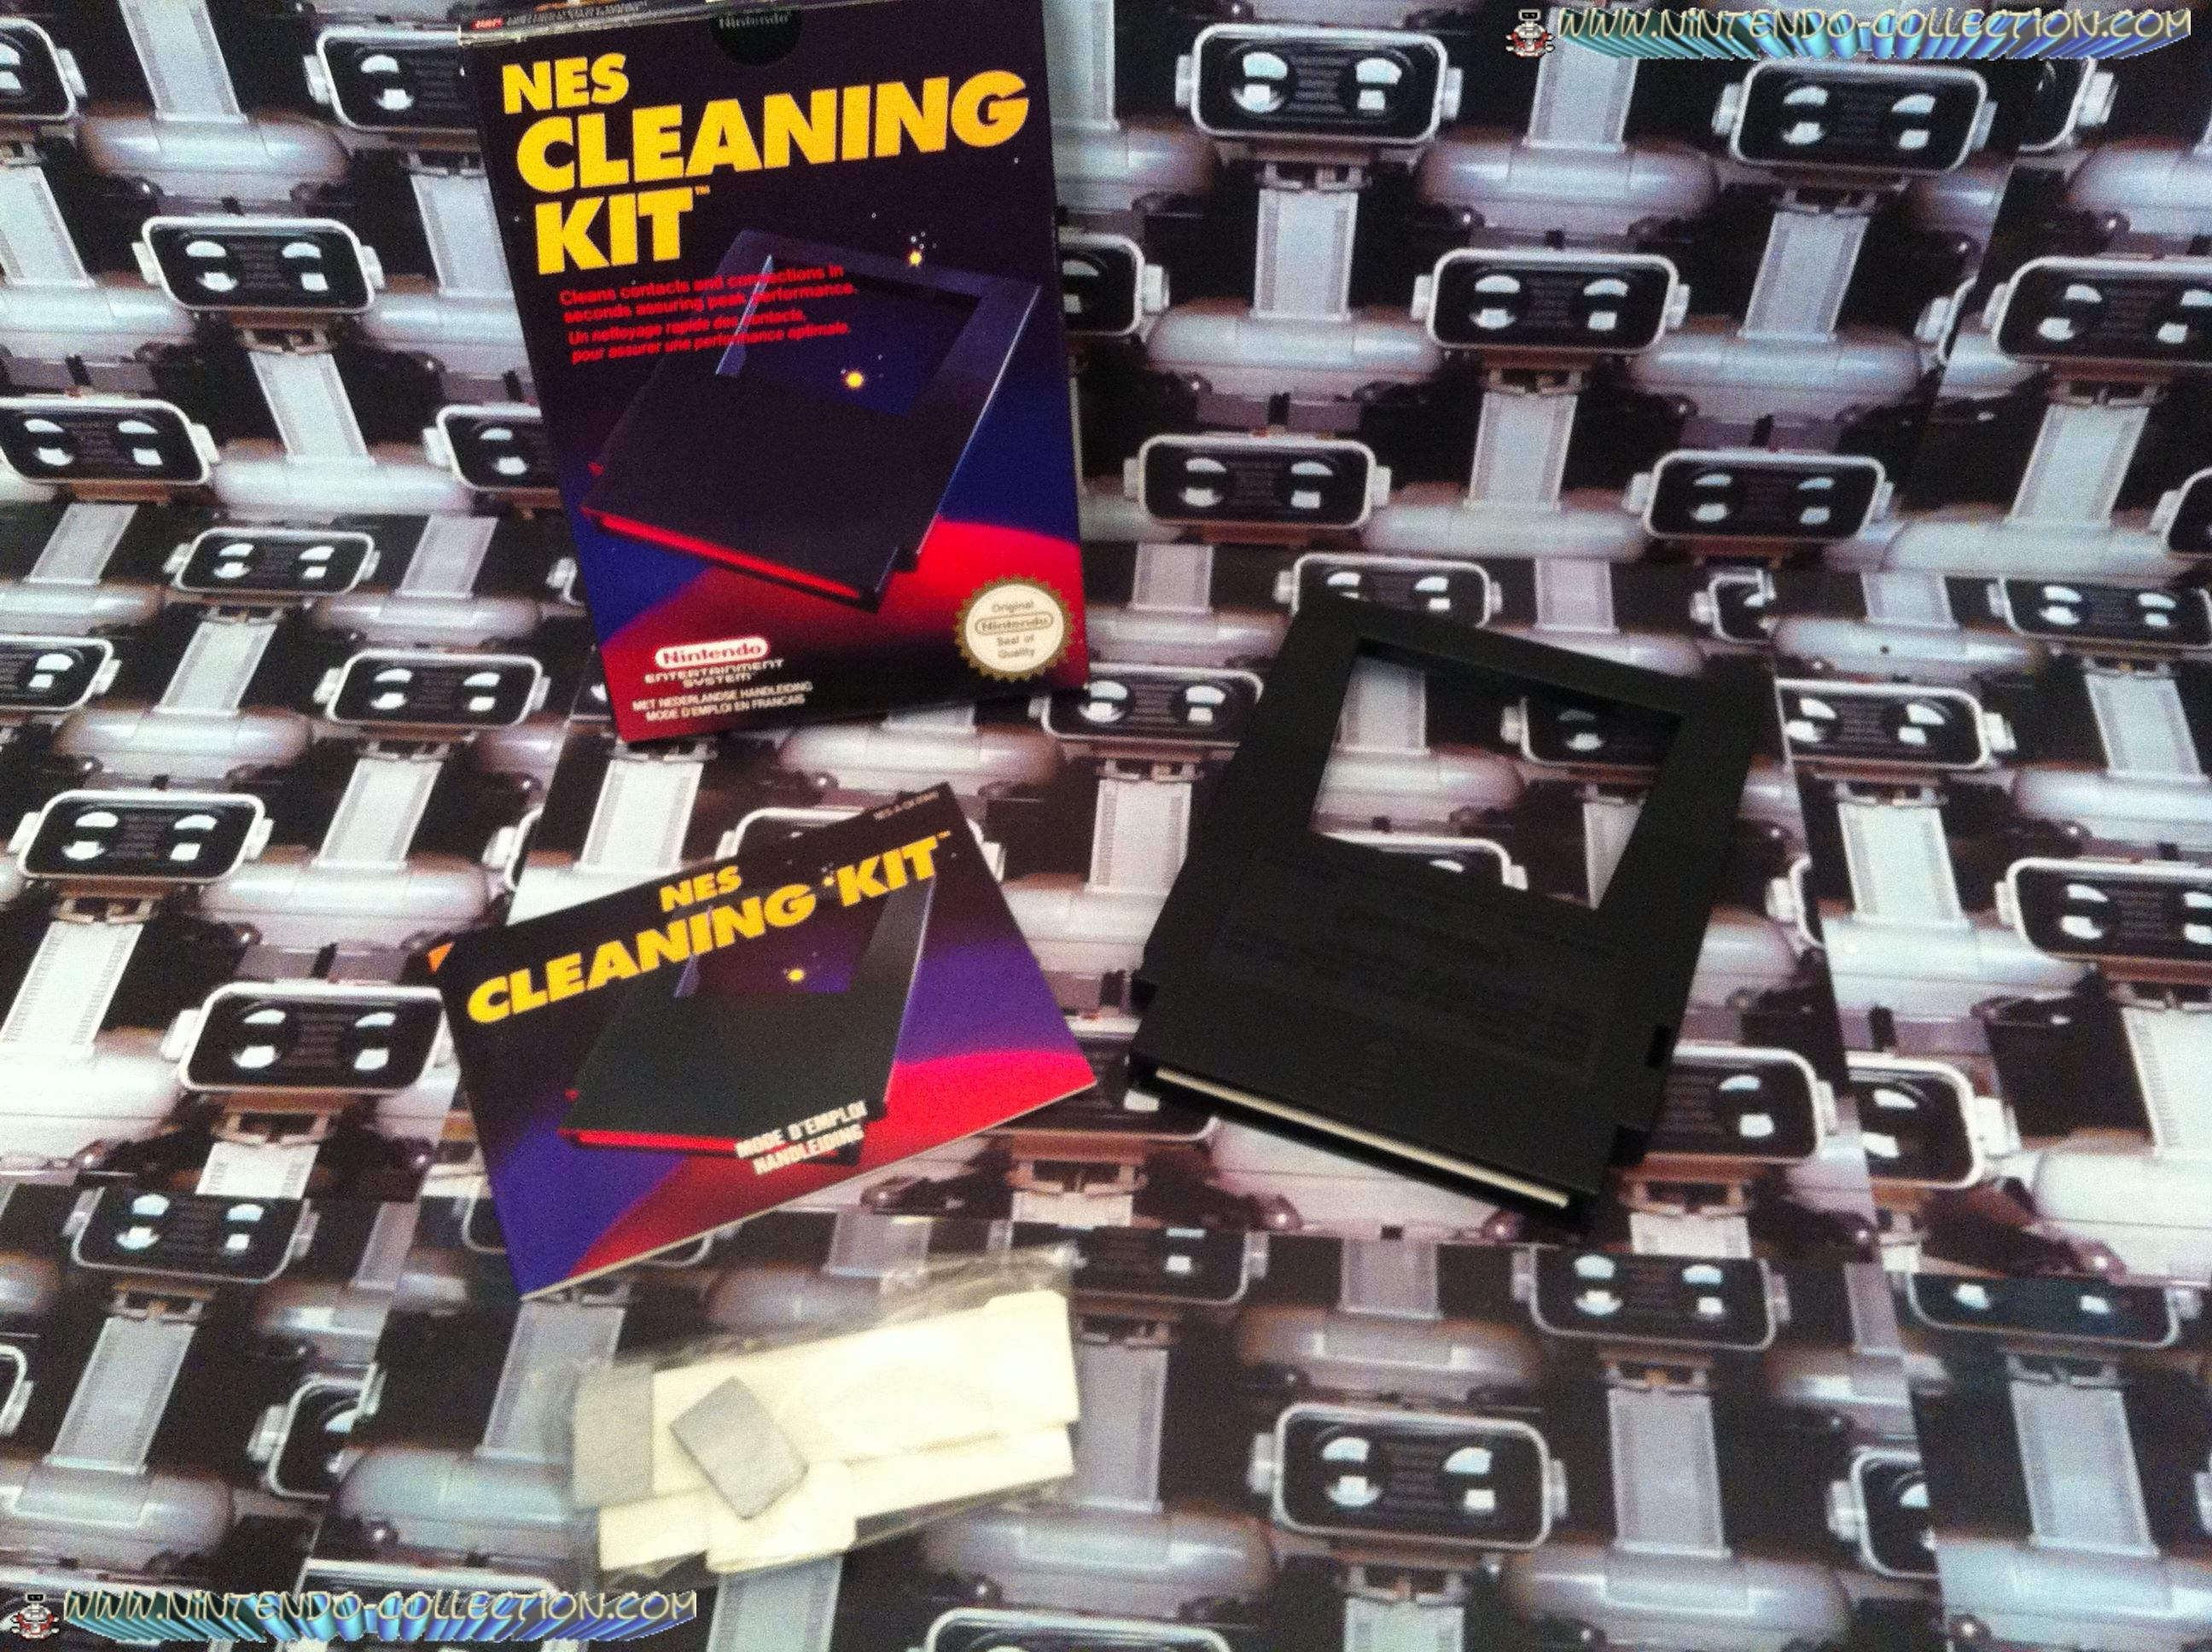 www.nintendo-collection.com - NES Cleanning Kit